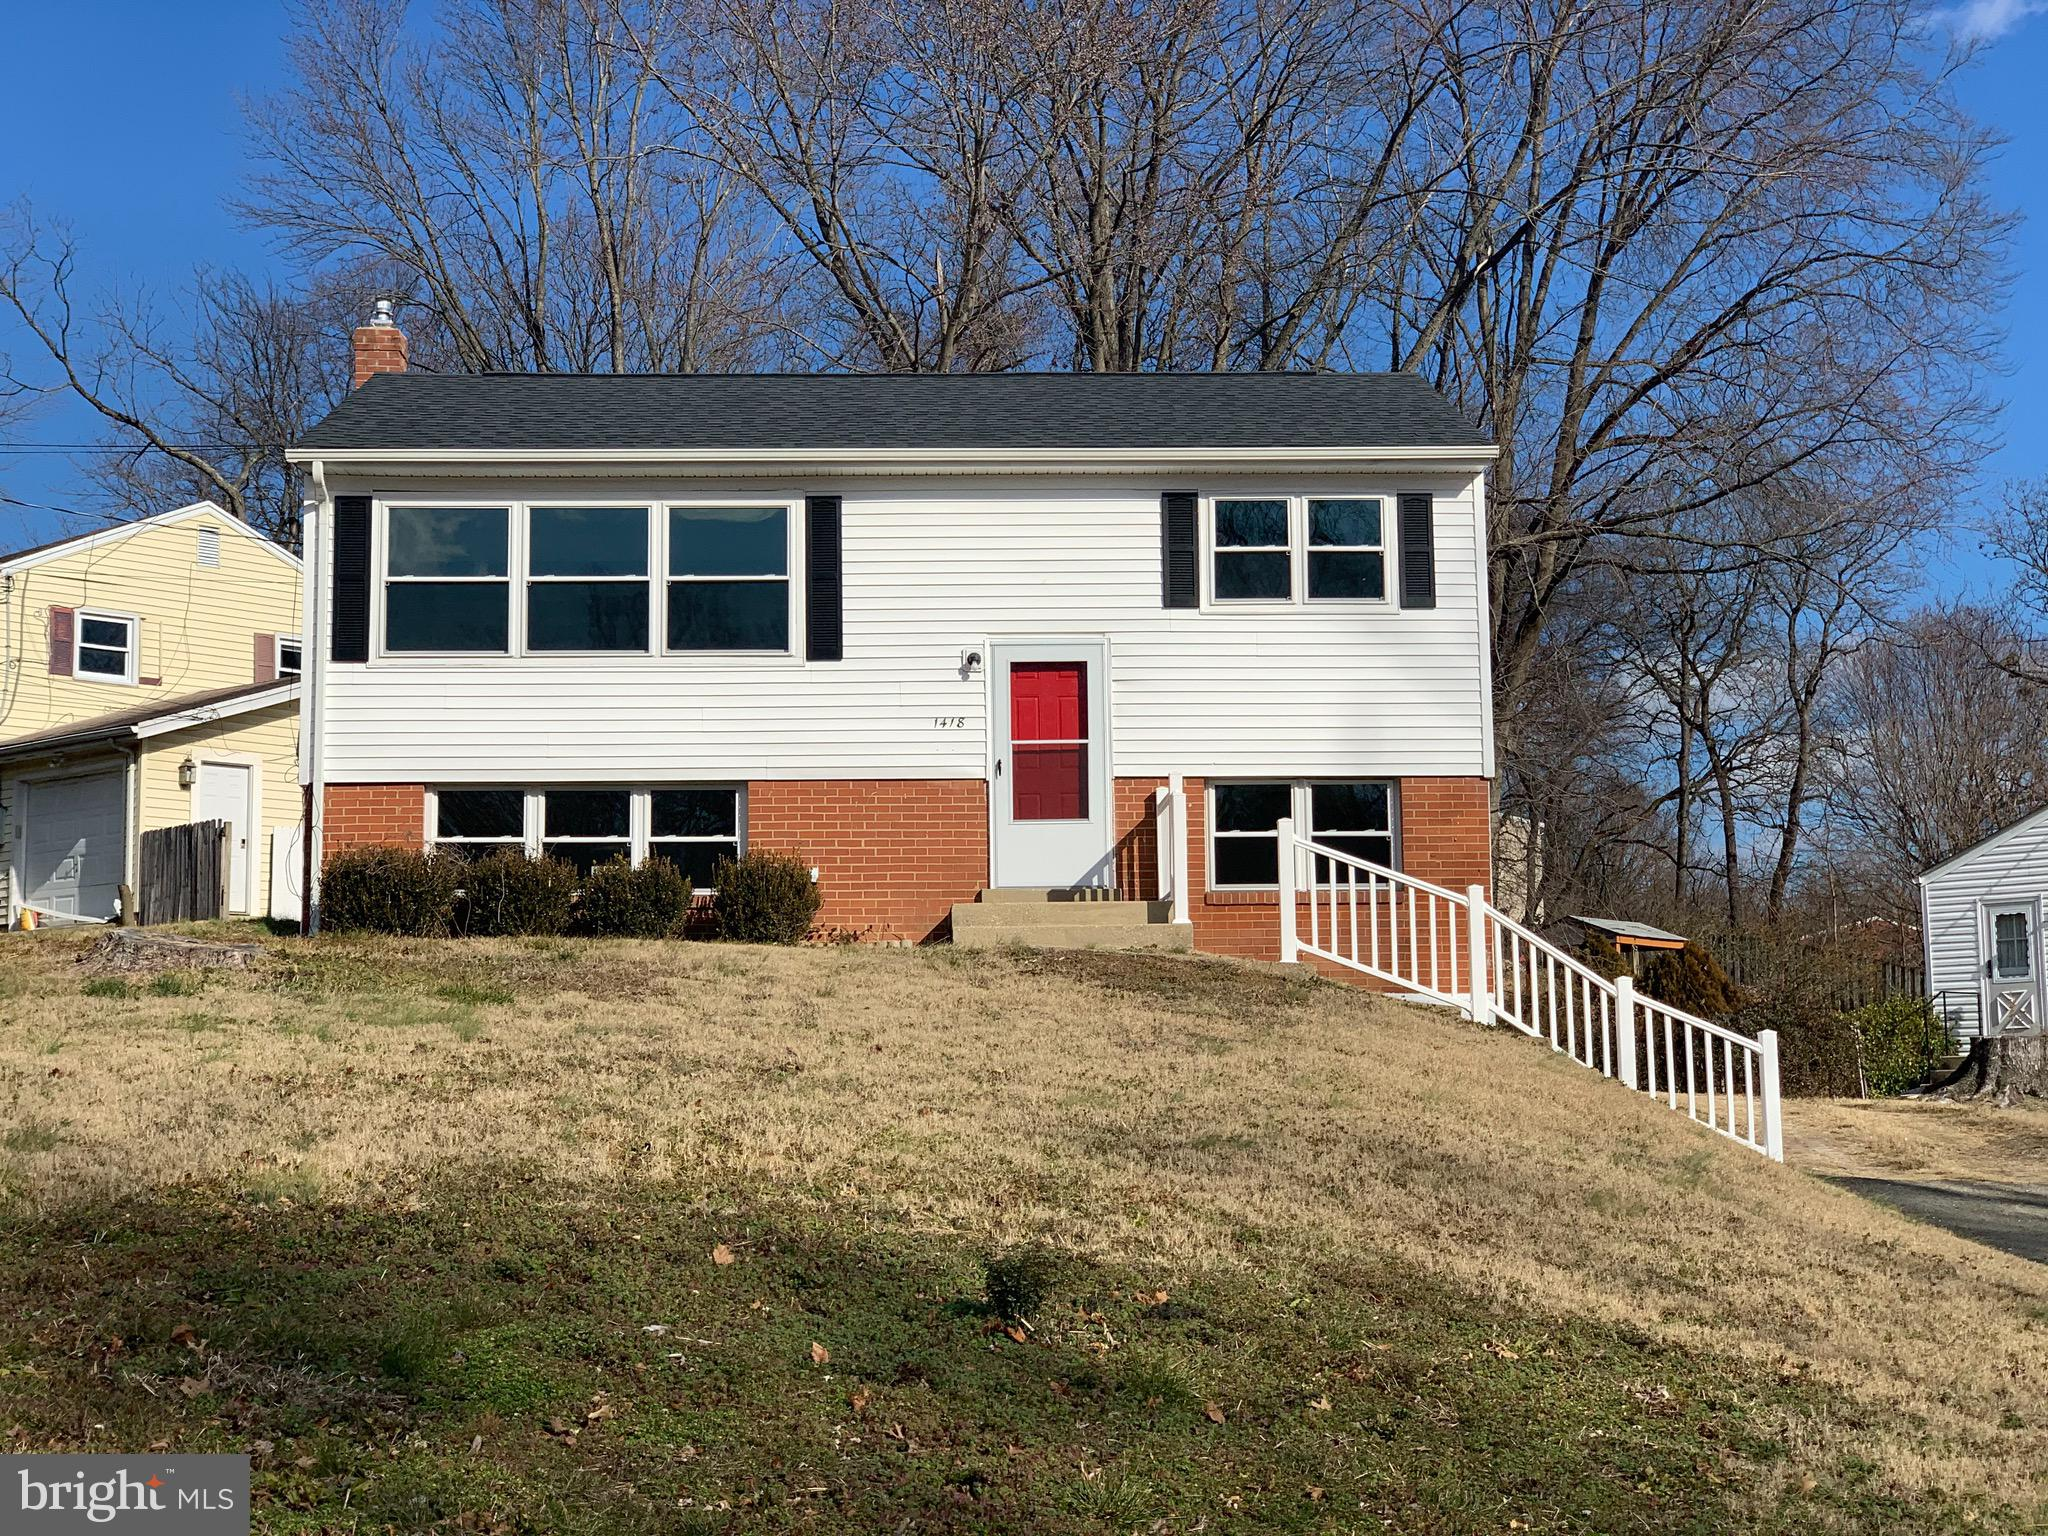 Fully renovated to include new roof, windows, appliances, HVAC, electrical, plumbing, cabinets, gran